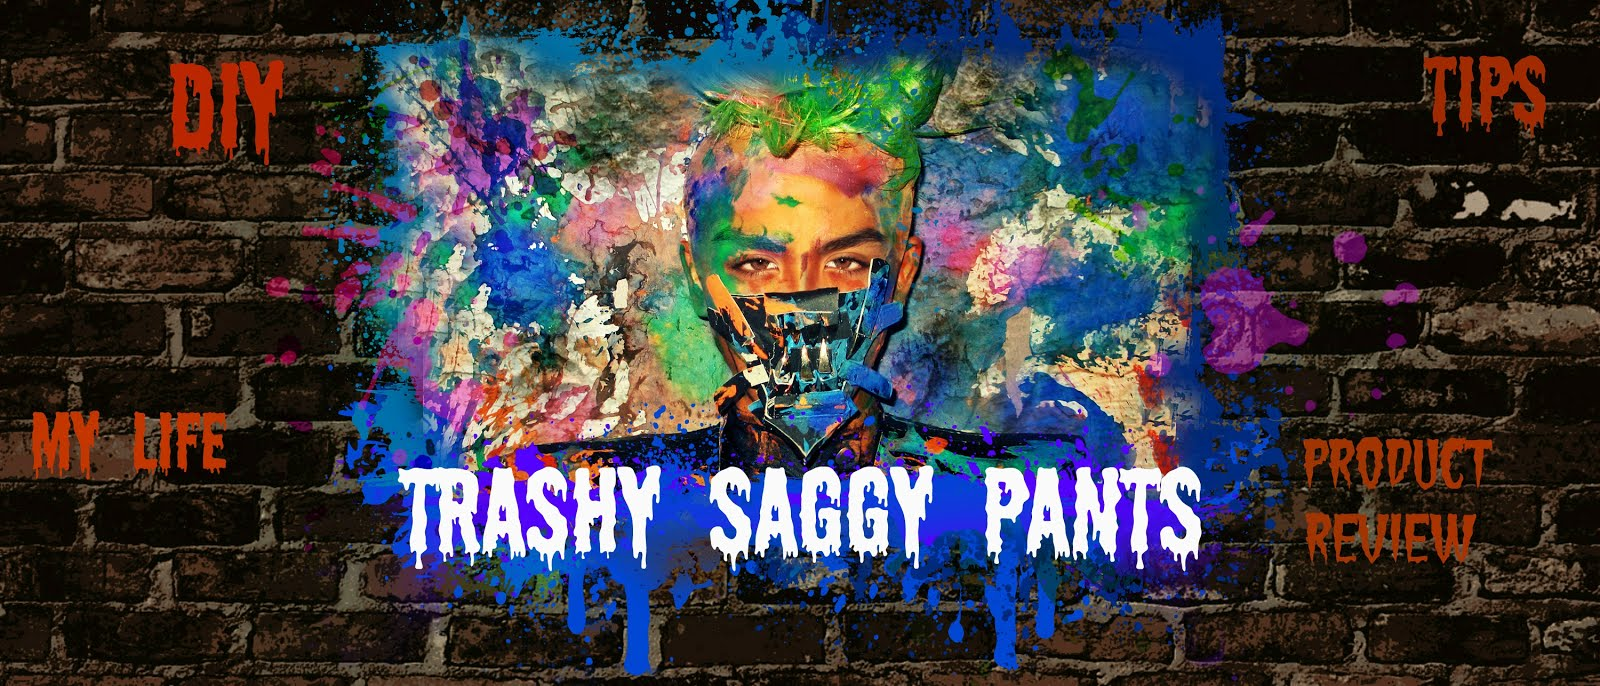 Trashy Saggy Pants